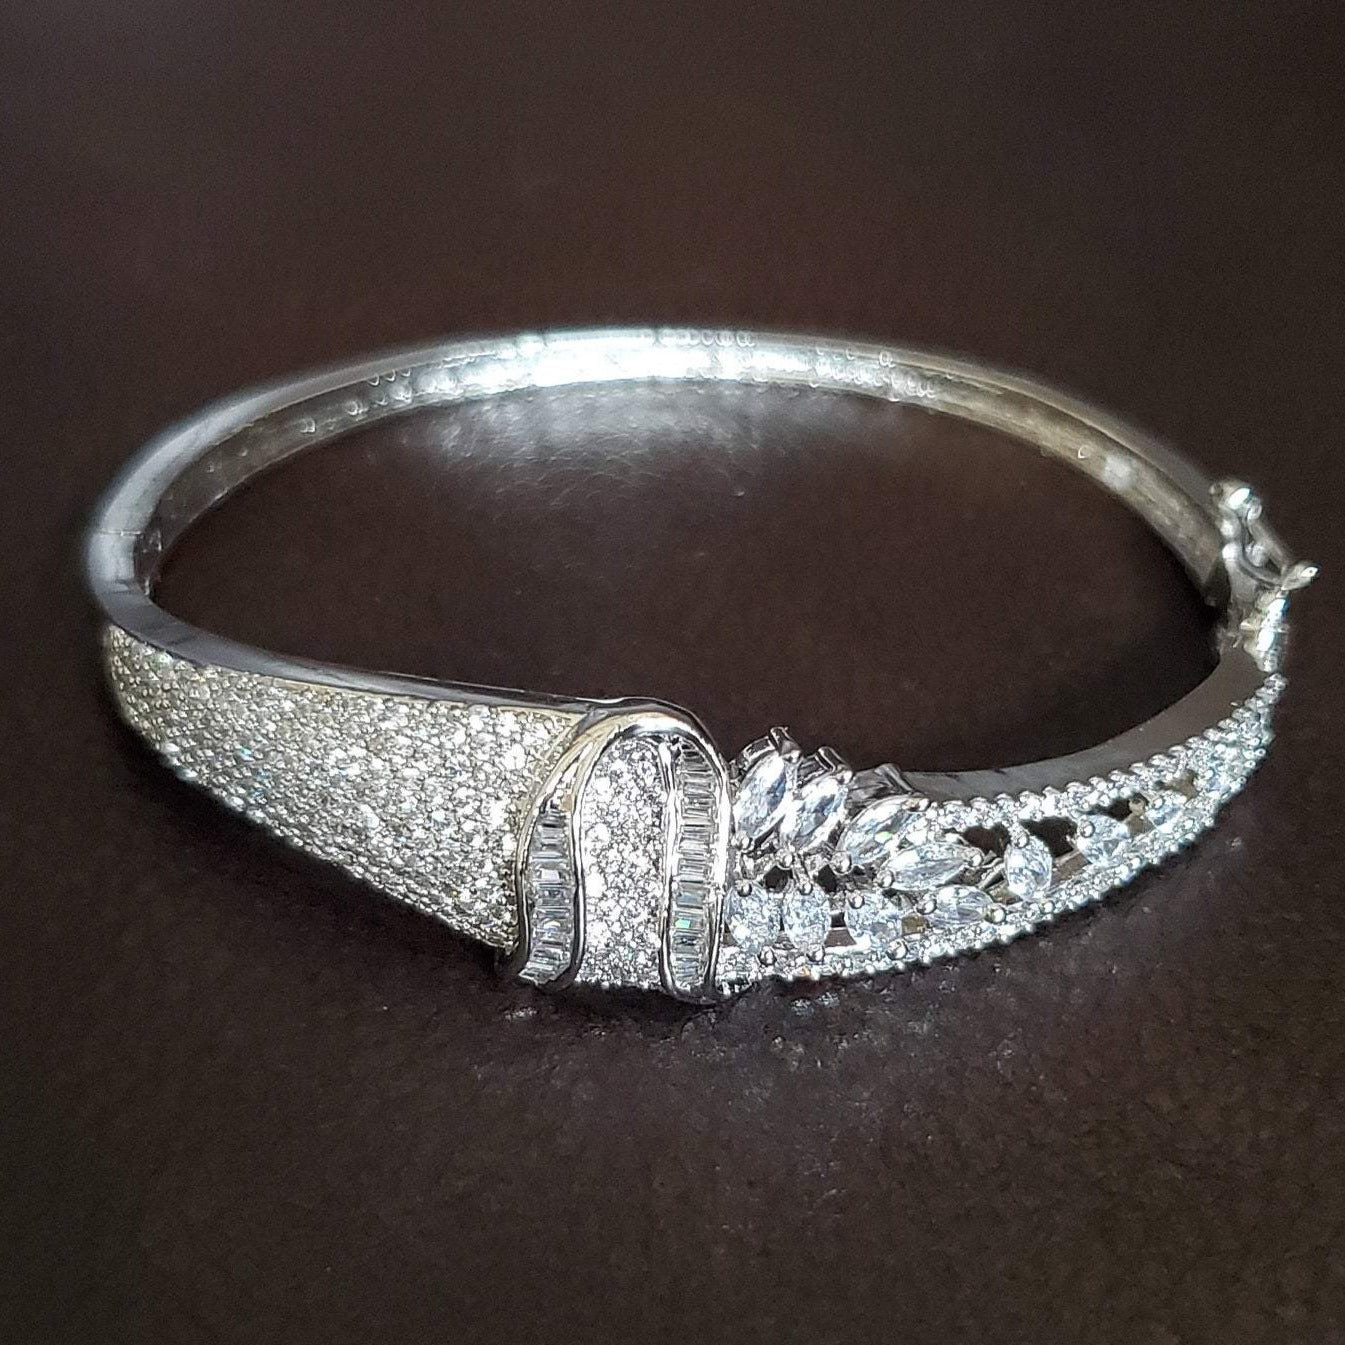 CZ/AD Bracelet/American Diamond Bracelet/Indian cz Diamond Kada/cubic Zircon Bracelet/ Indian cz-ad Diamond bangle/designer diamond bracelet